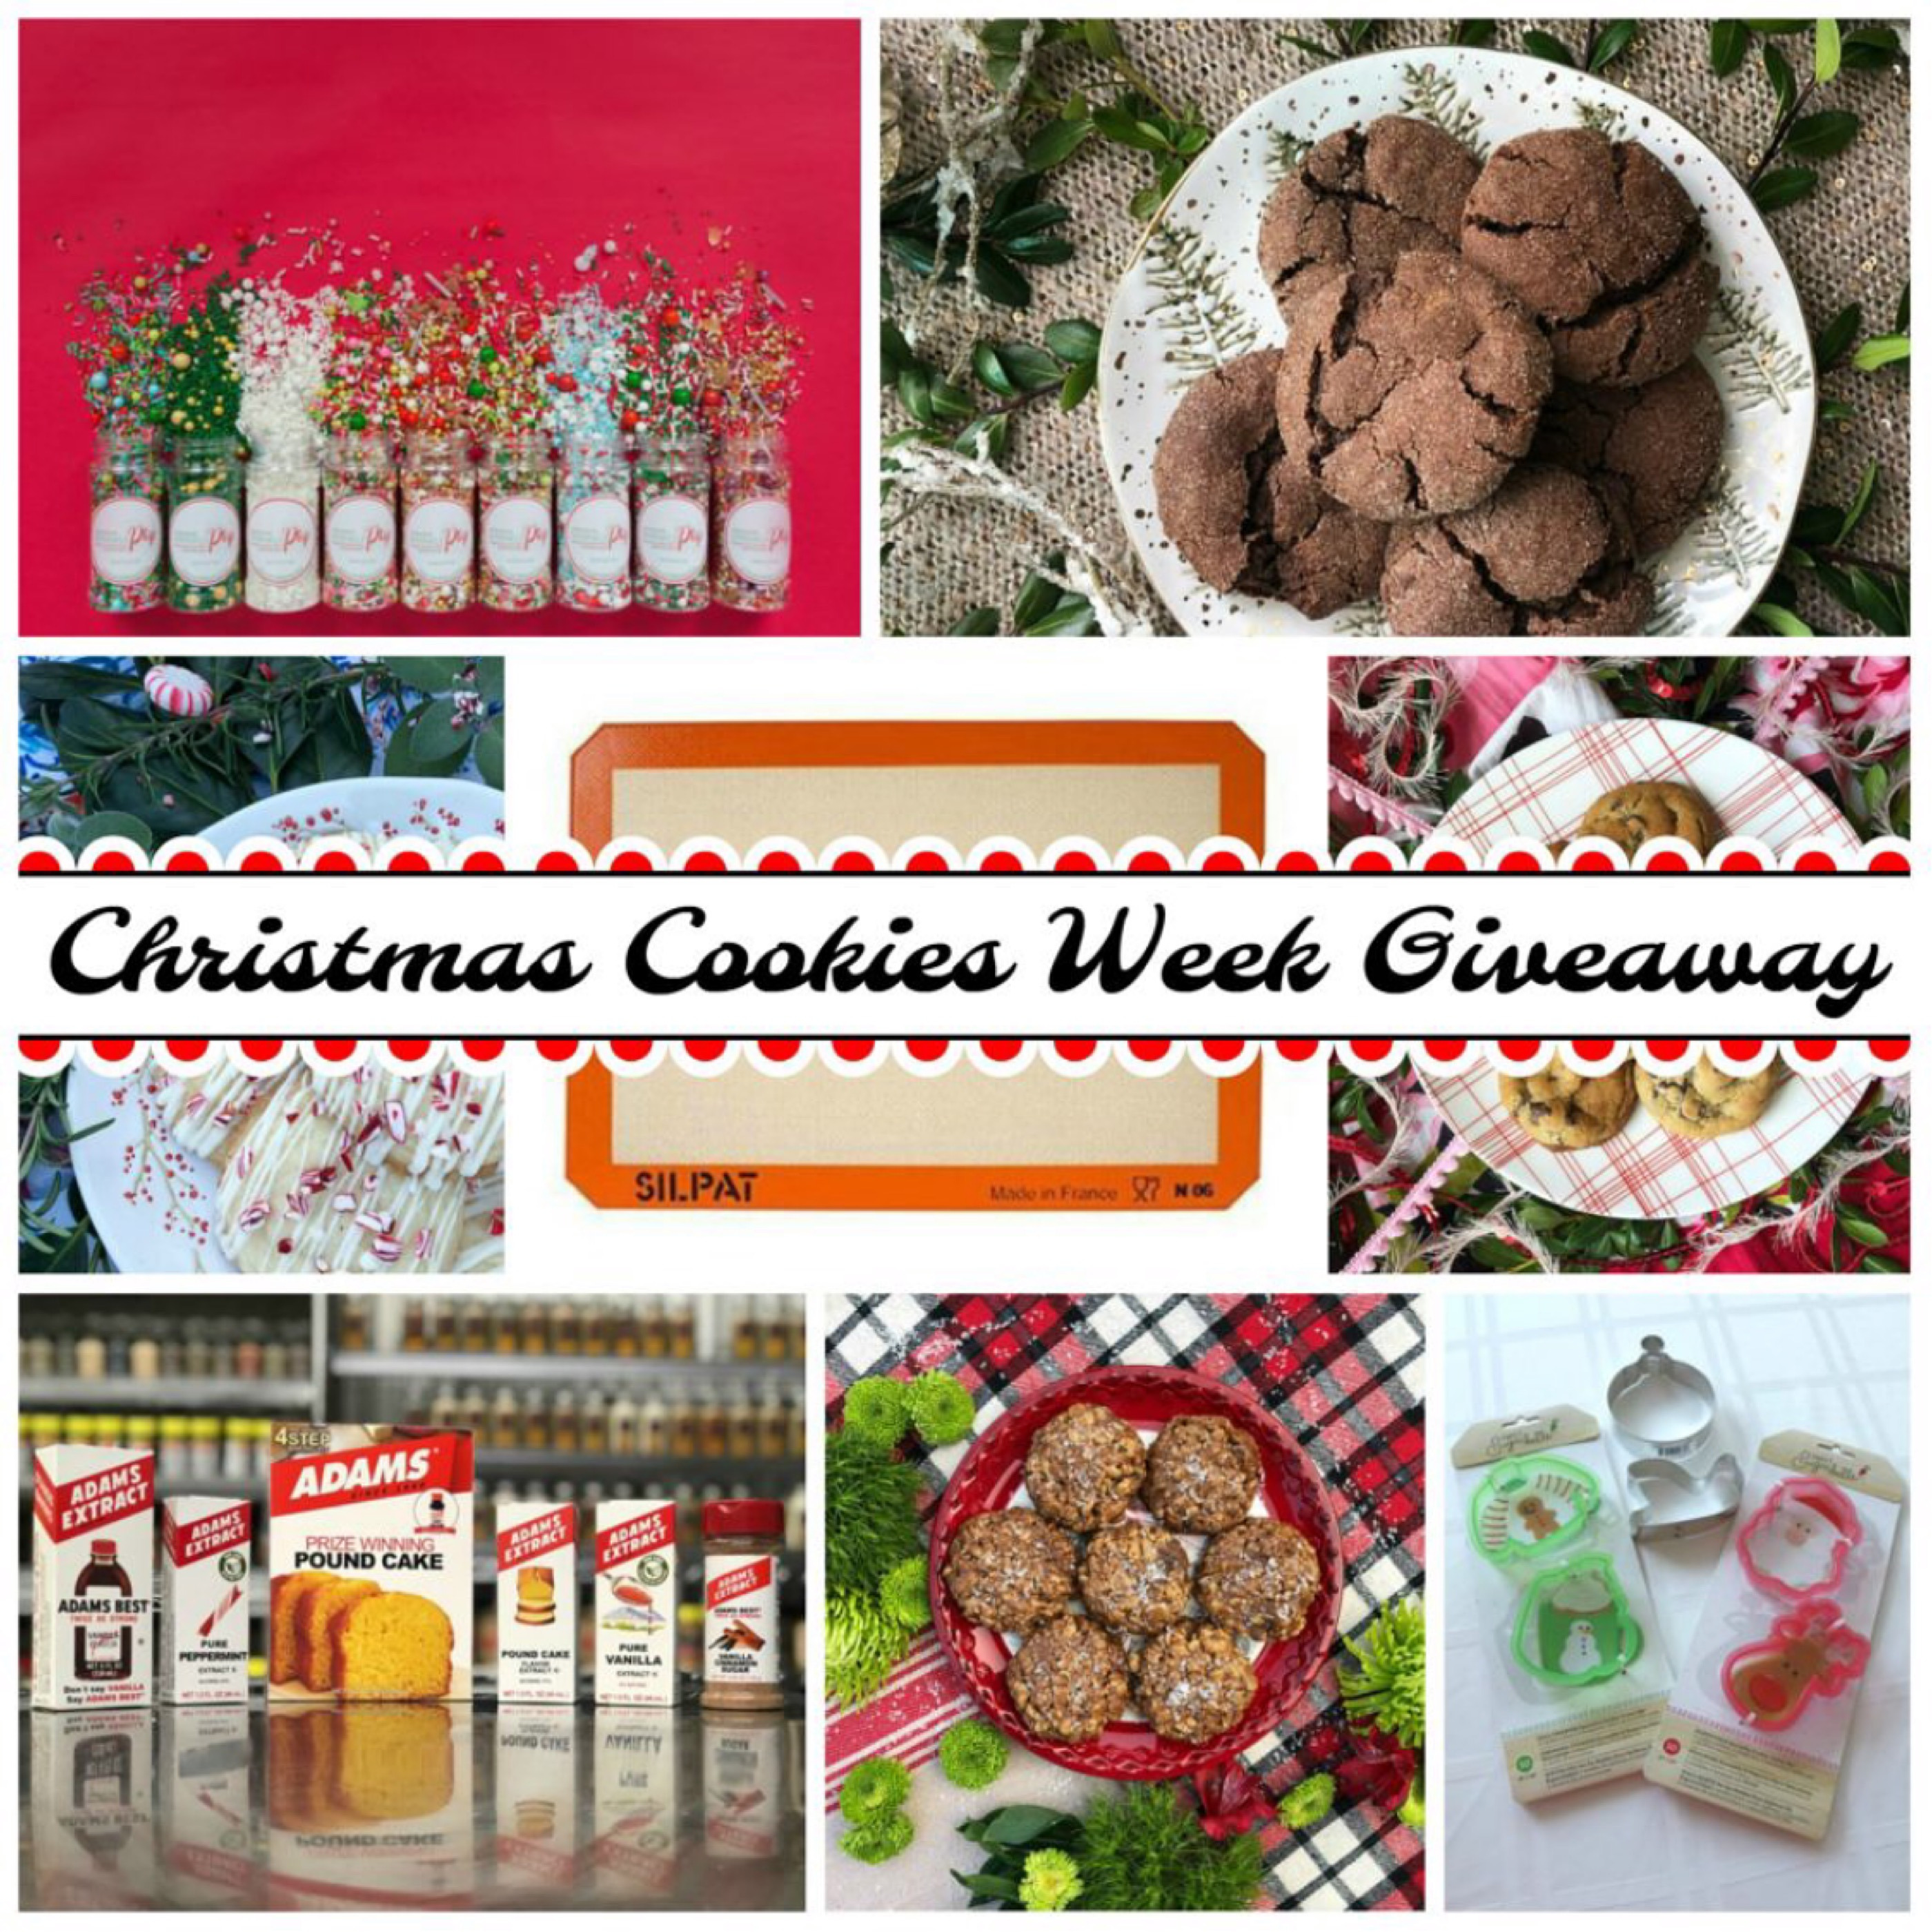 Instagram Christmas Cookies Week 2018 Giveaway Faith Hope Love And Luck Survive Despite A Whiskered Accomplice Faith Hope Love Luck Survive Despite A Whiskered Accomplice